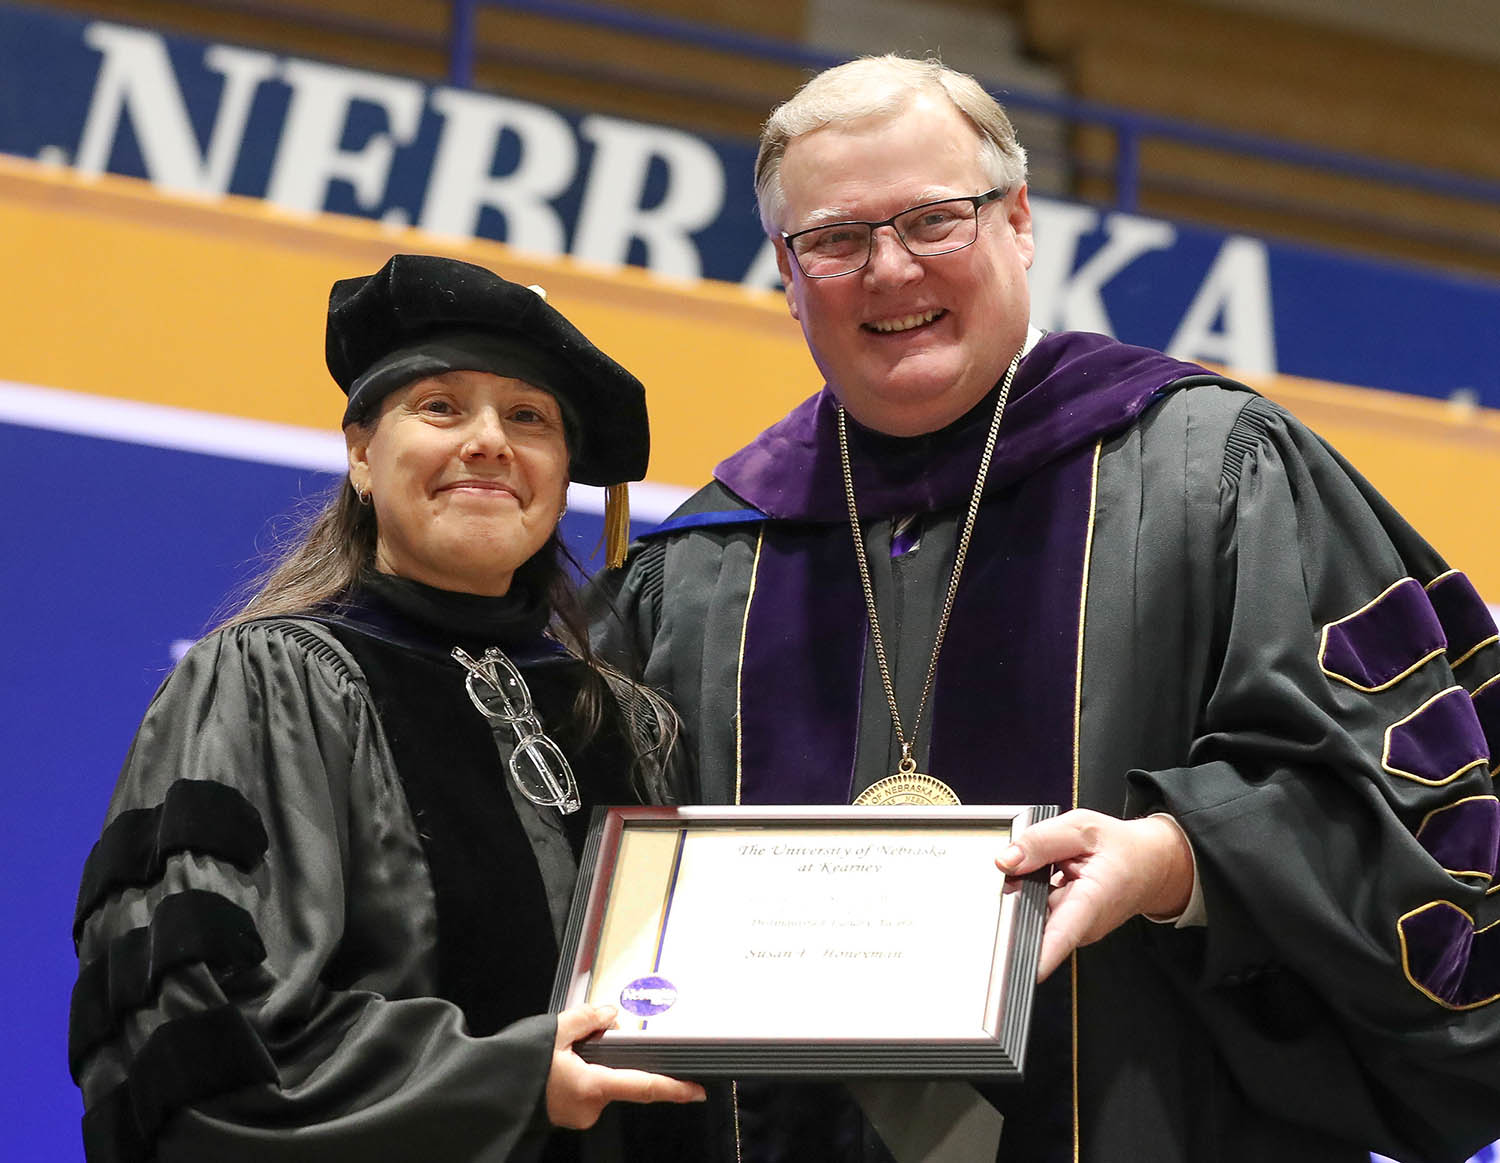 Susan Honeyman, a professor in UNK's Department of English, receives the Leland Holdt/Security Mutual Life Distinguished Faculty Award from Chancellor Doug Kristensen during Friday's winter commencement at the Health and Sports Center. (Photo by Corbey R. Dorsey, UNK Communications)